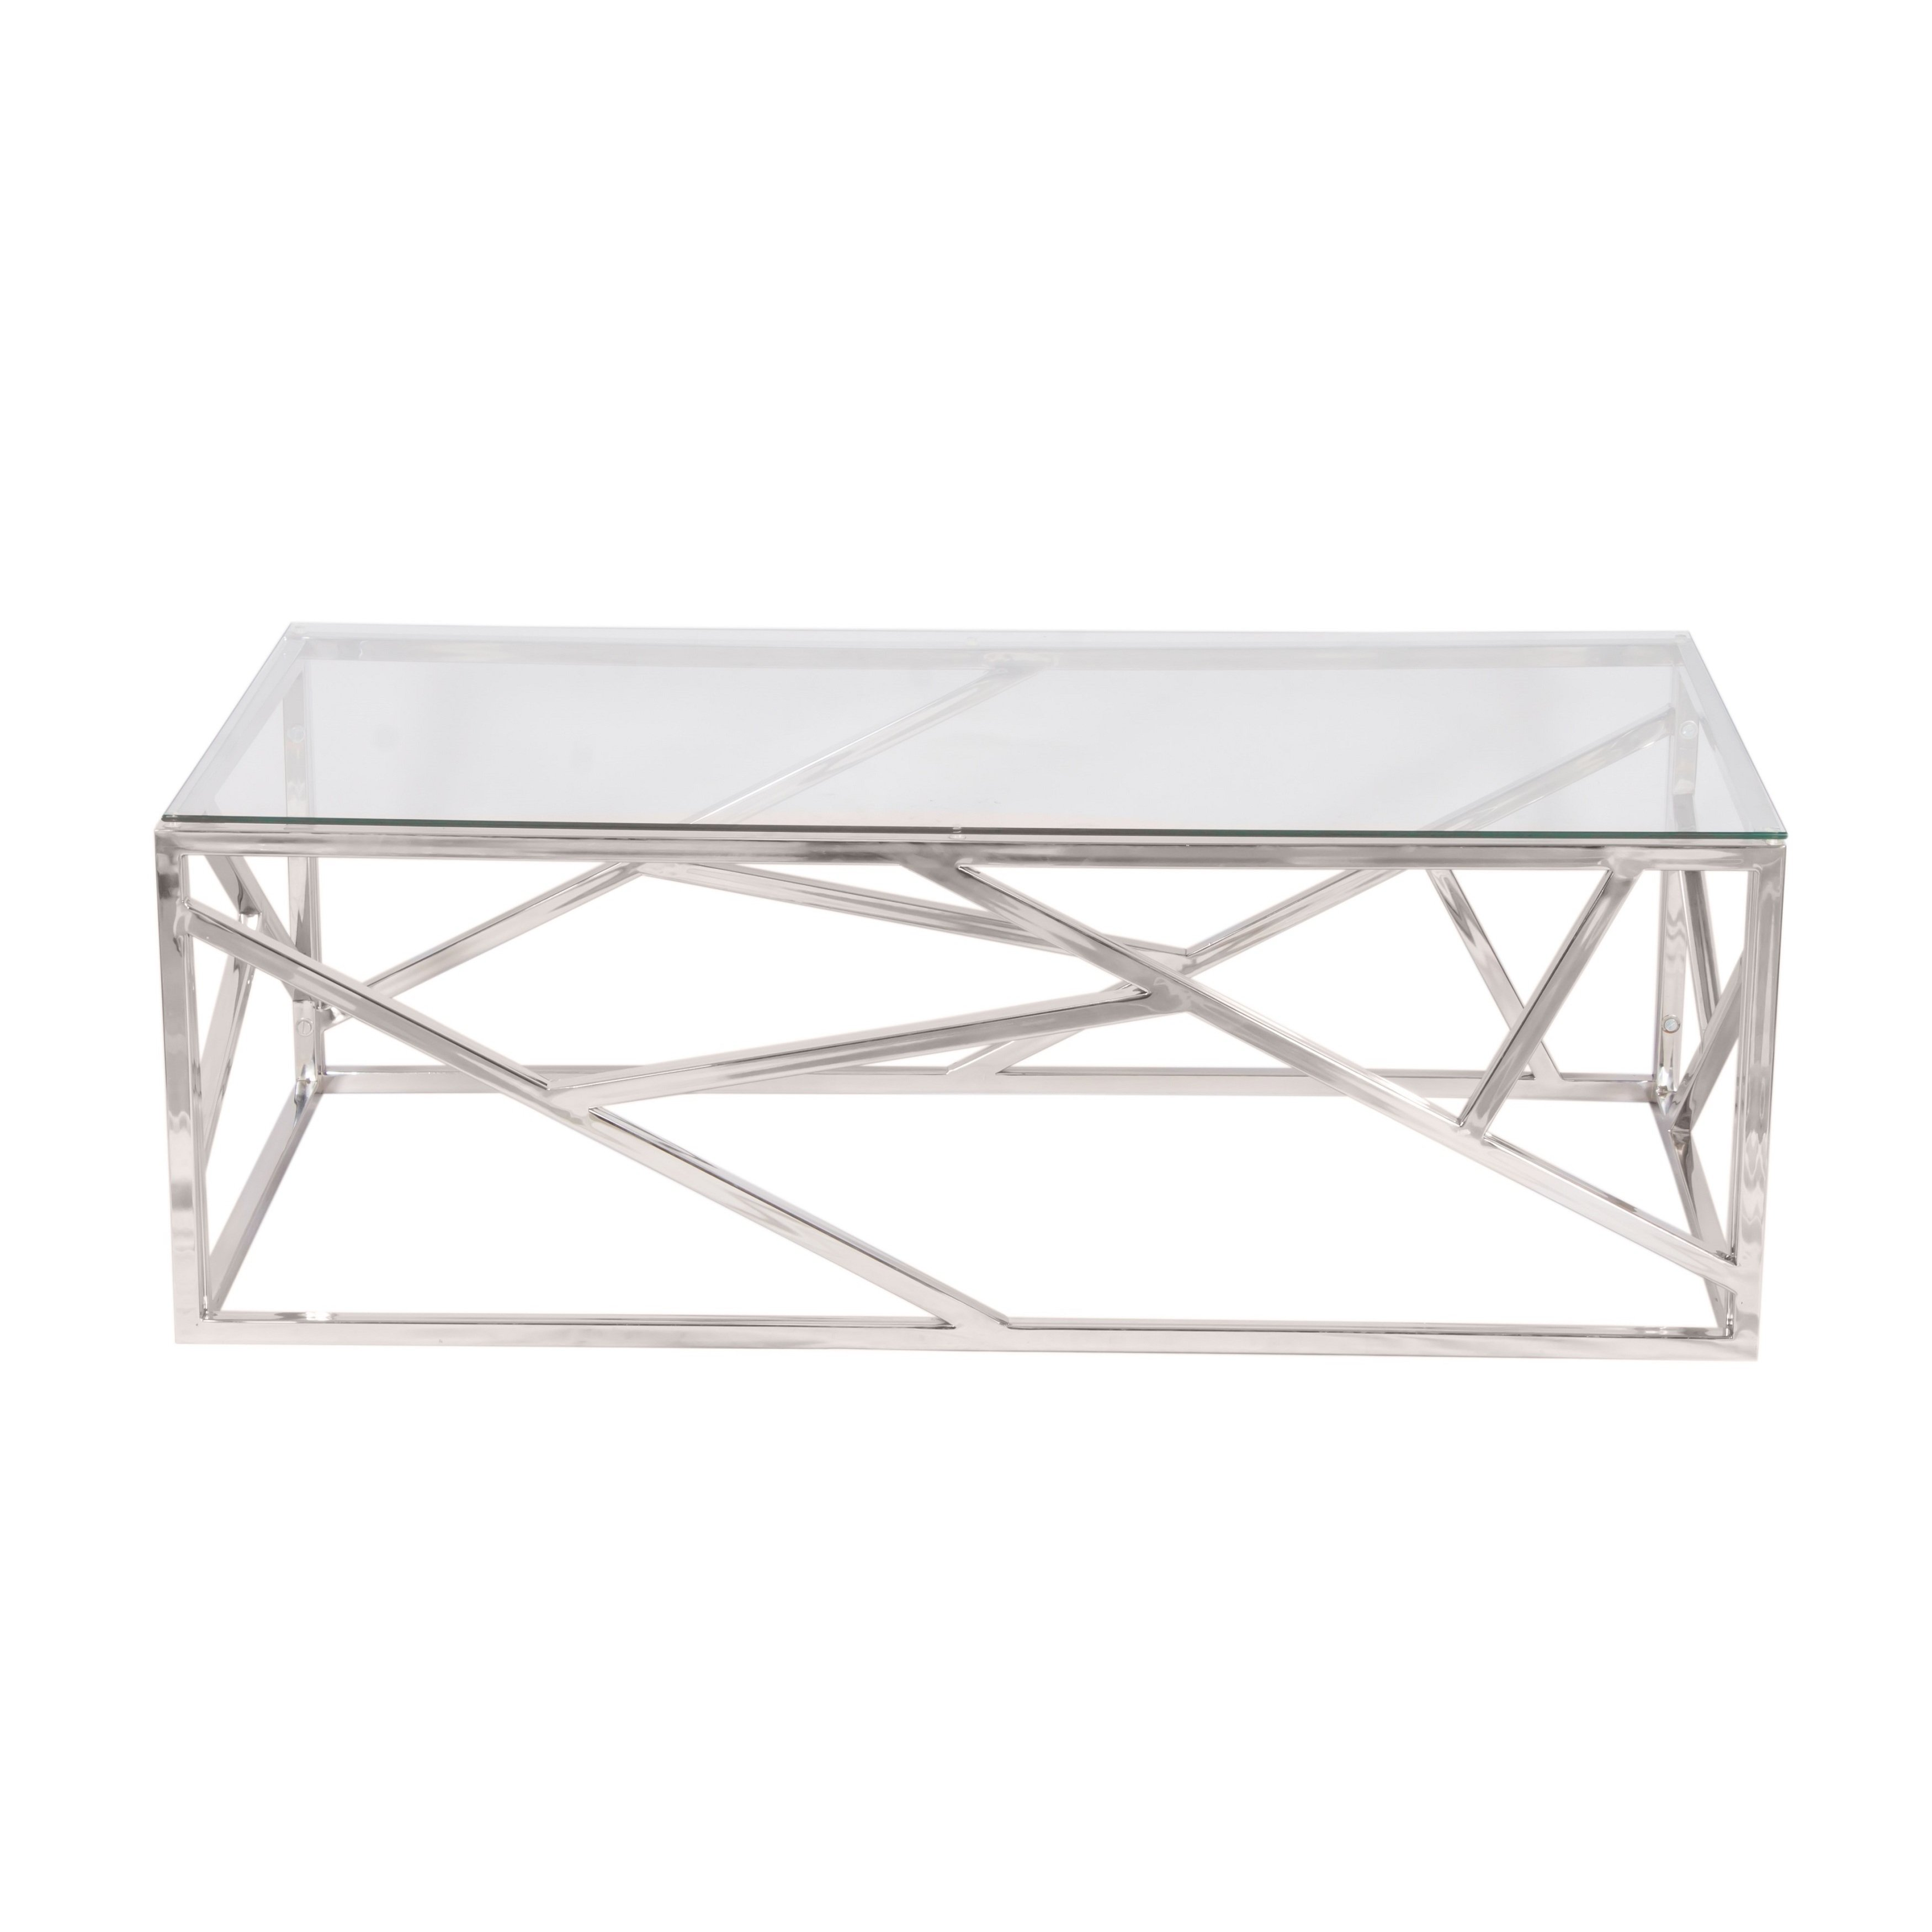 sterling silvertone stainless steel coffee table with clear glass lorelei accent top free shipping today marble toronto black gold dining base dinette set console kmart kitchen